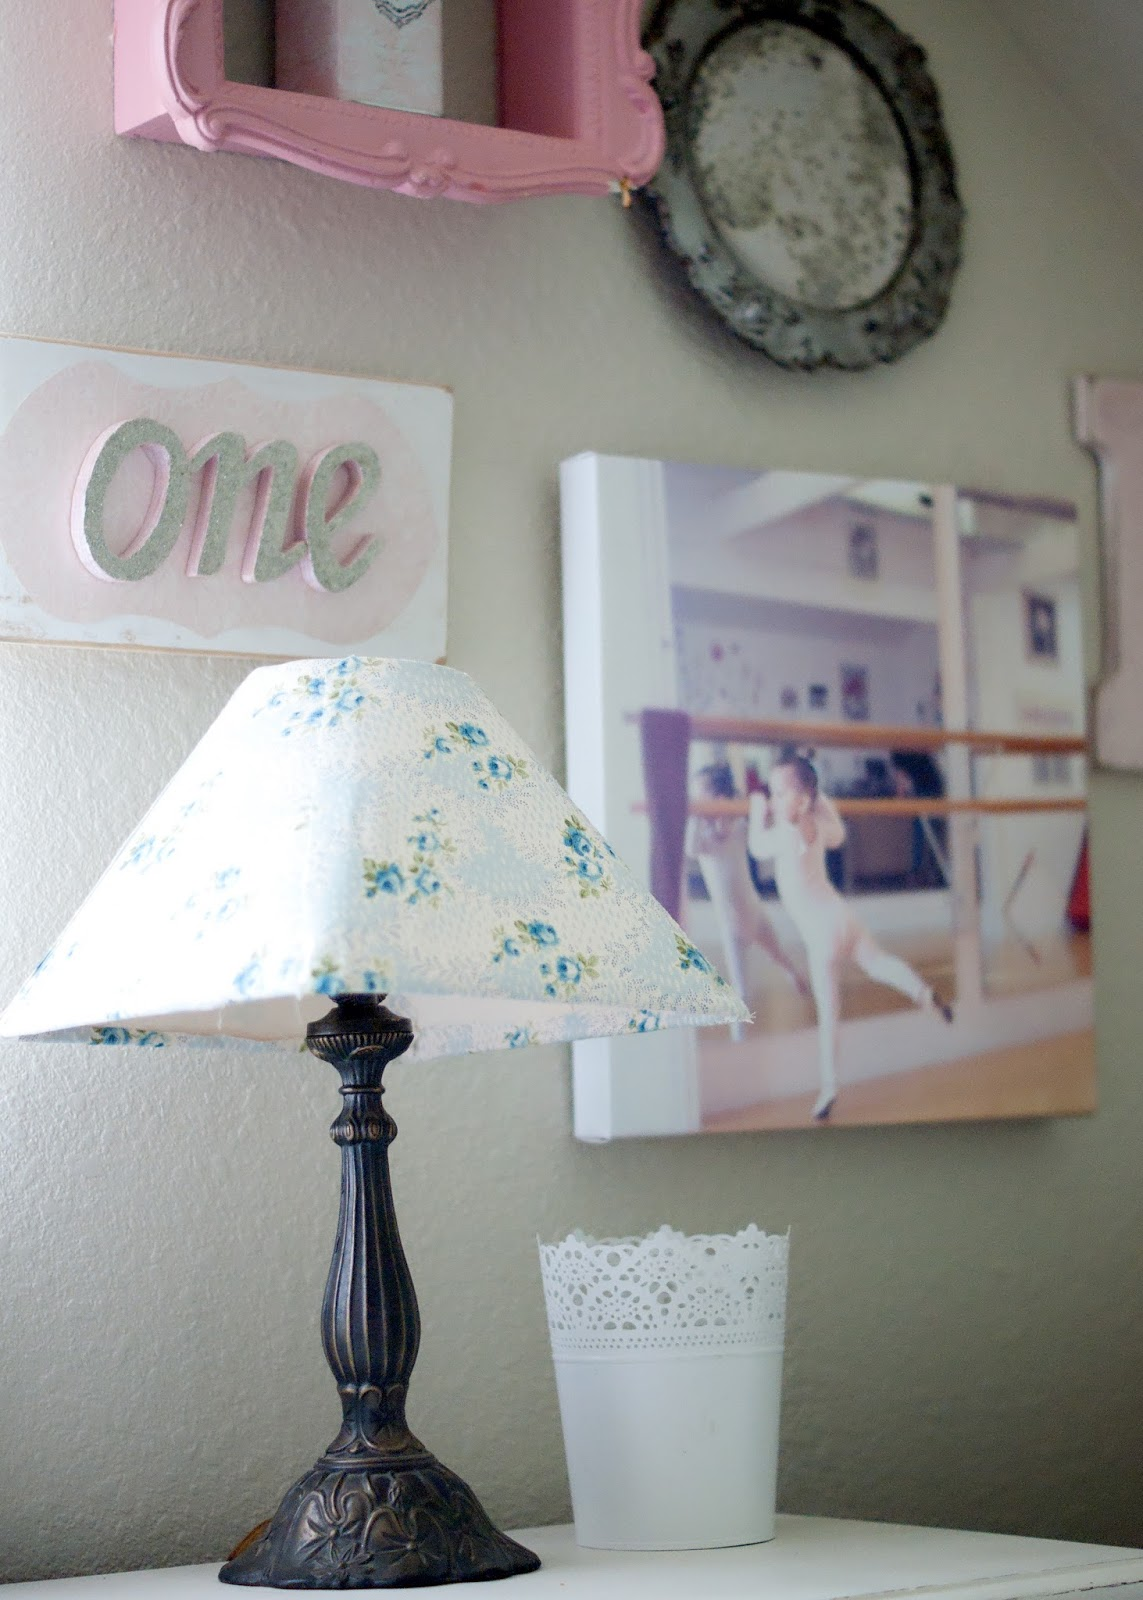 Gallery wall, vintage lamp, ballerina canvas